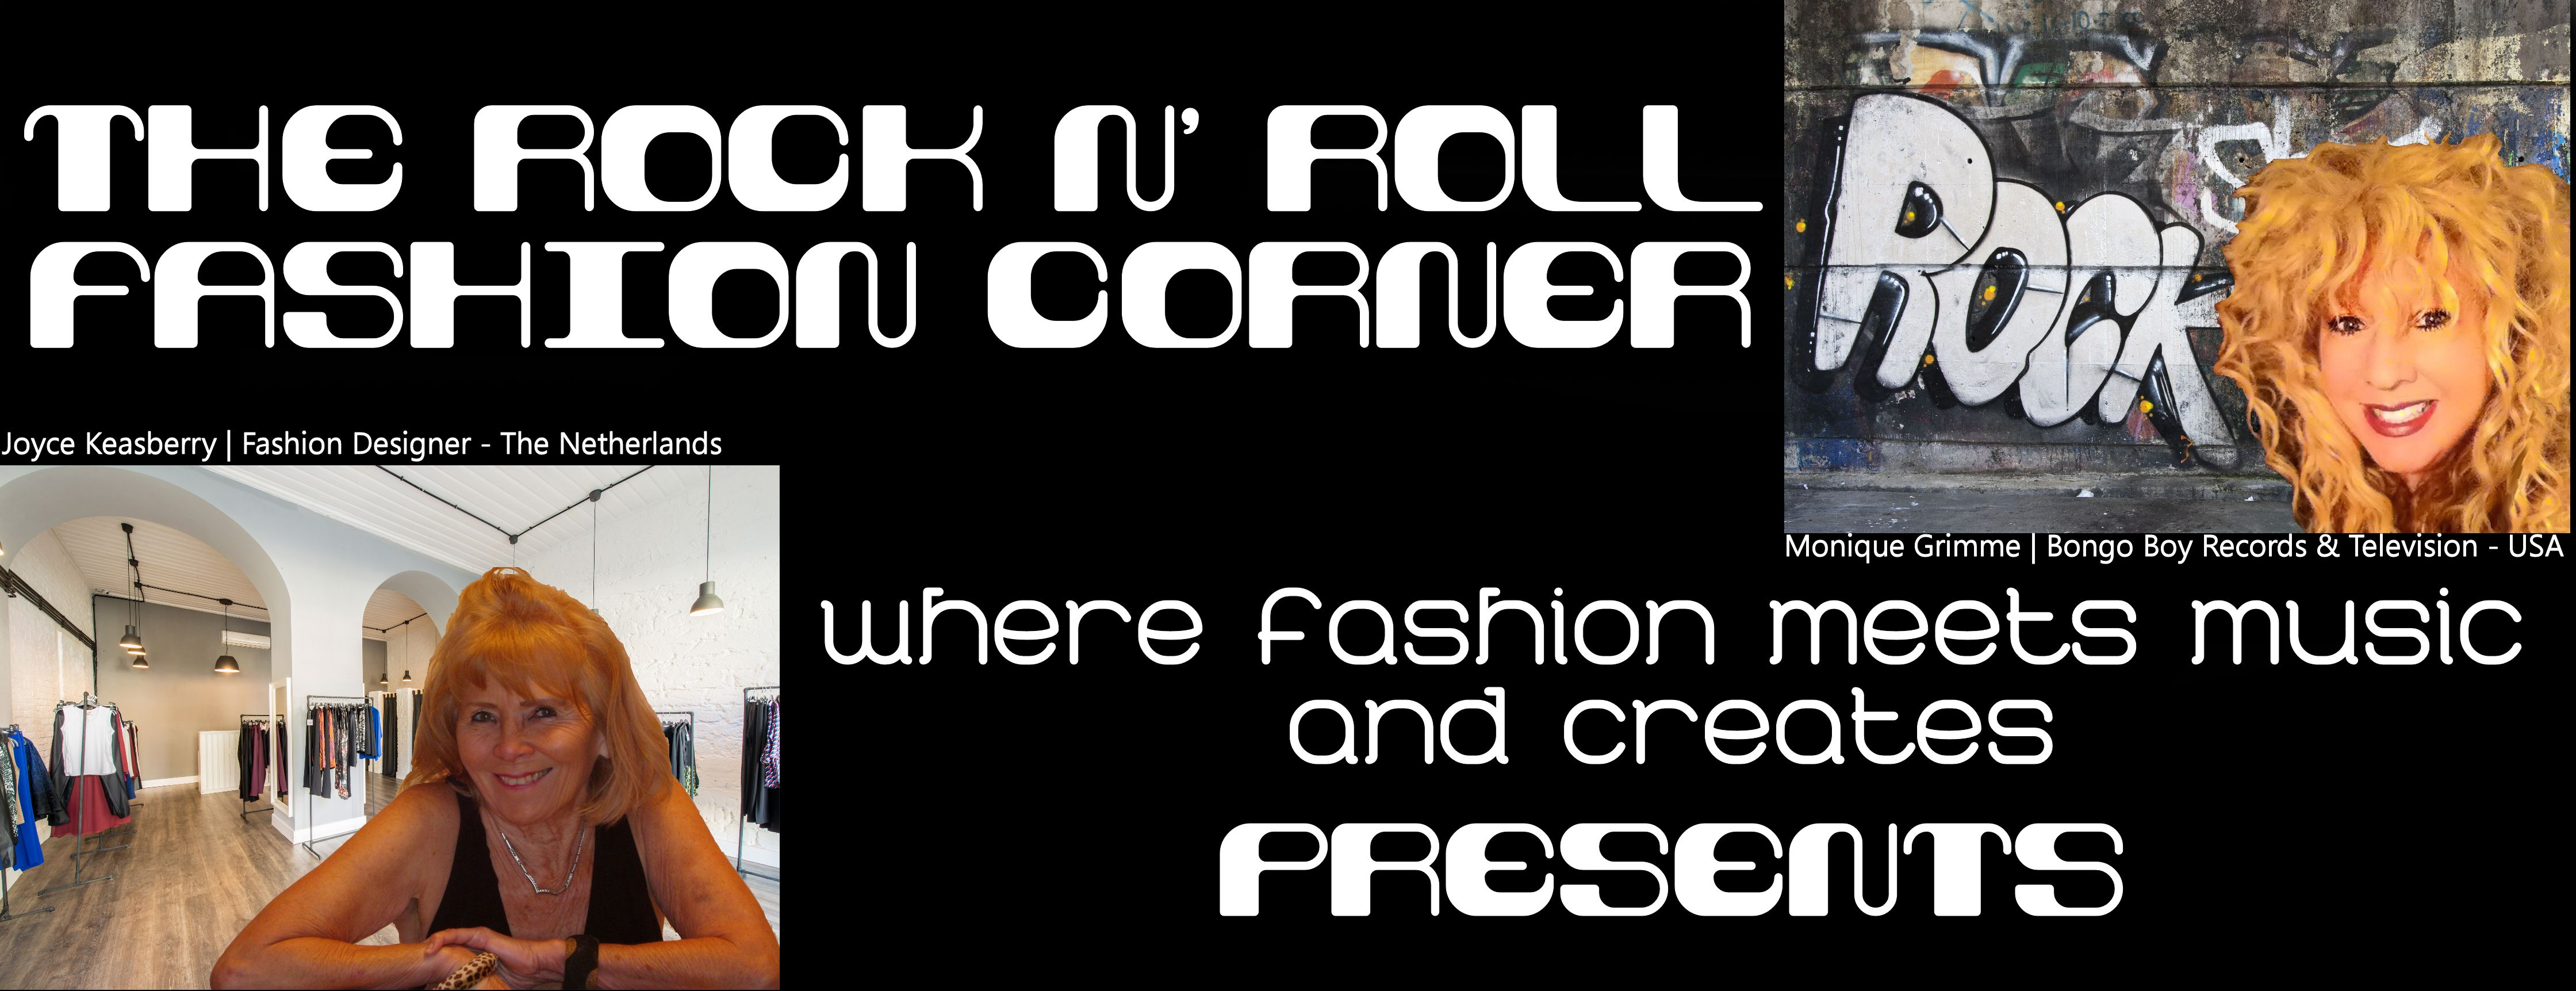 The Rock n' Roll Fashion Corner Presents